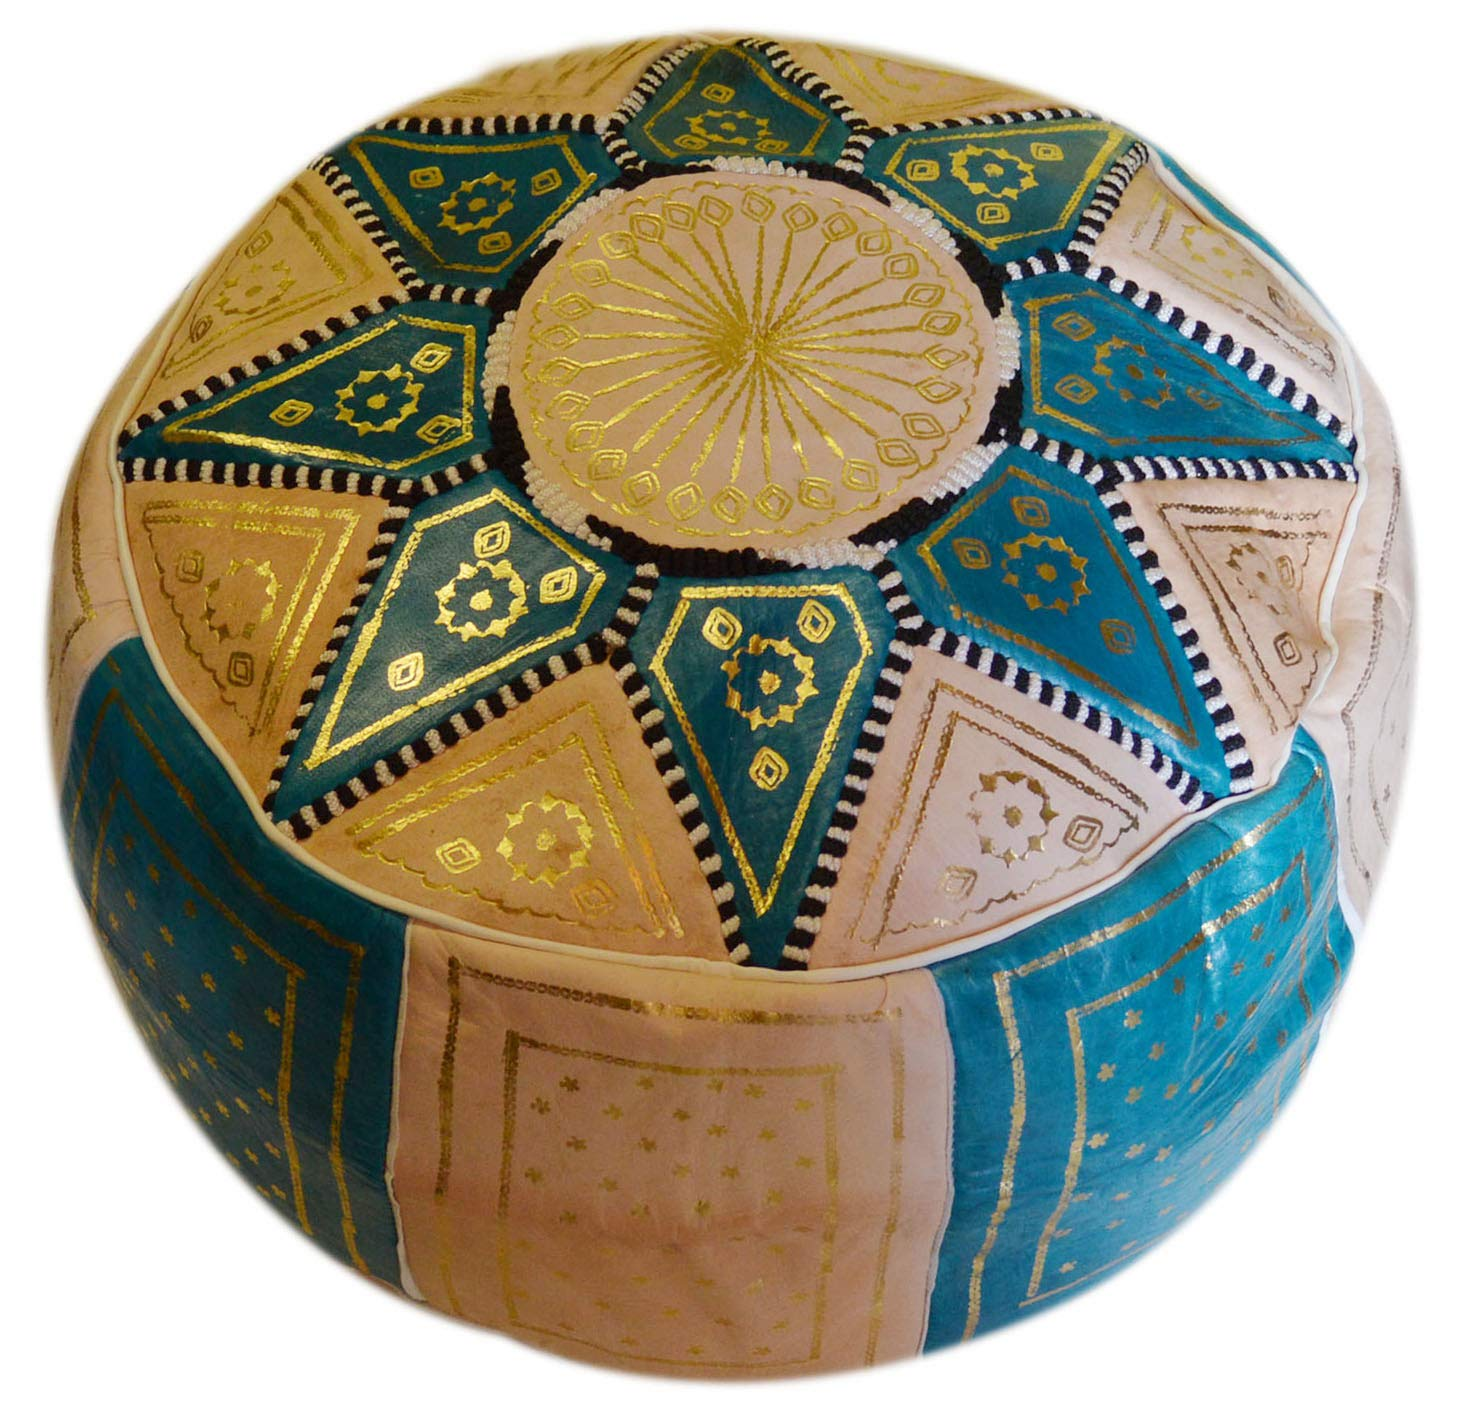 Moroccan Pouf Handmade Leather Luxury Ottomans Footstools Cover High Quality Satisfaction Guaranteed